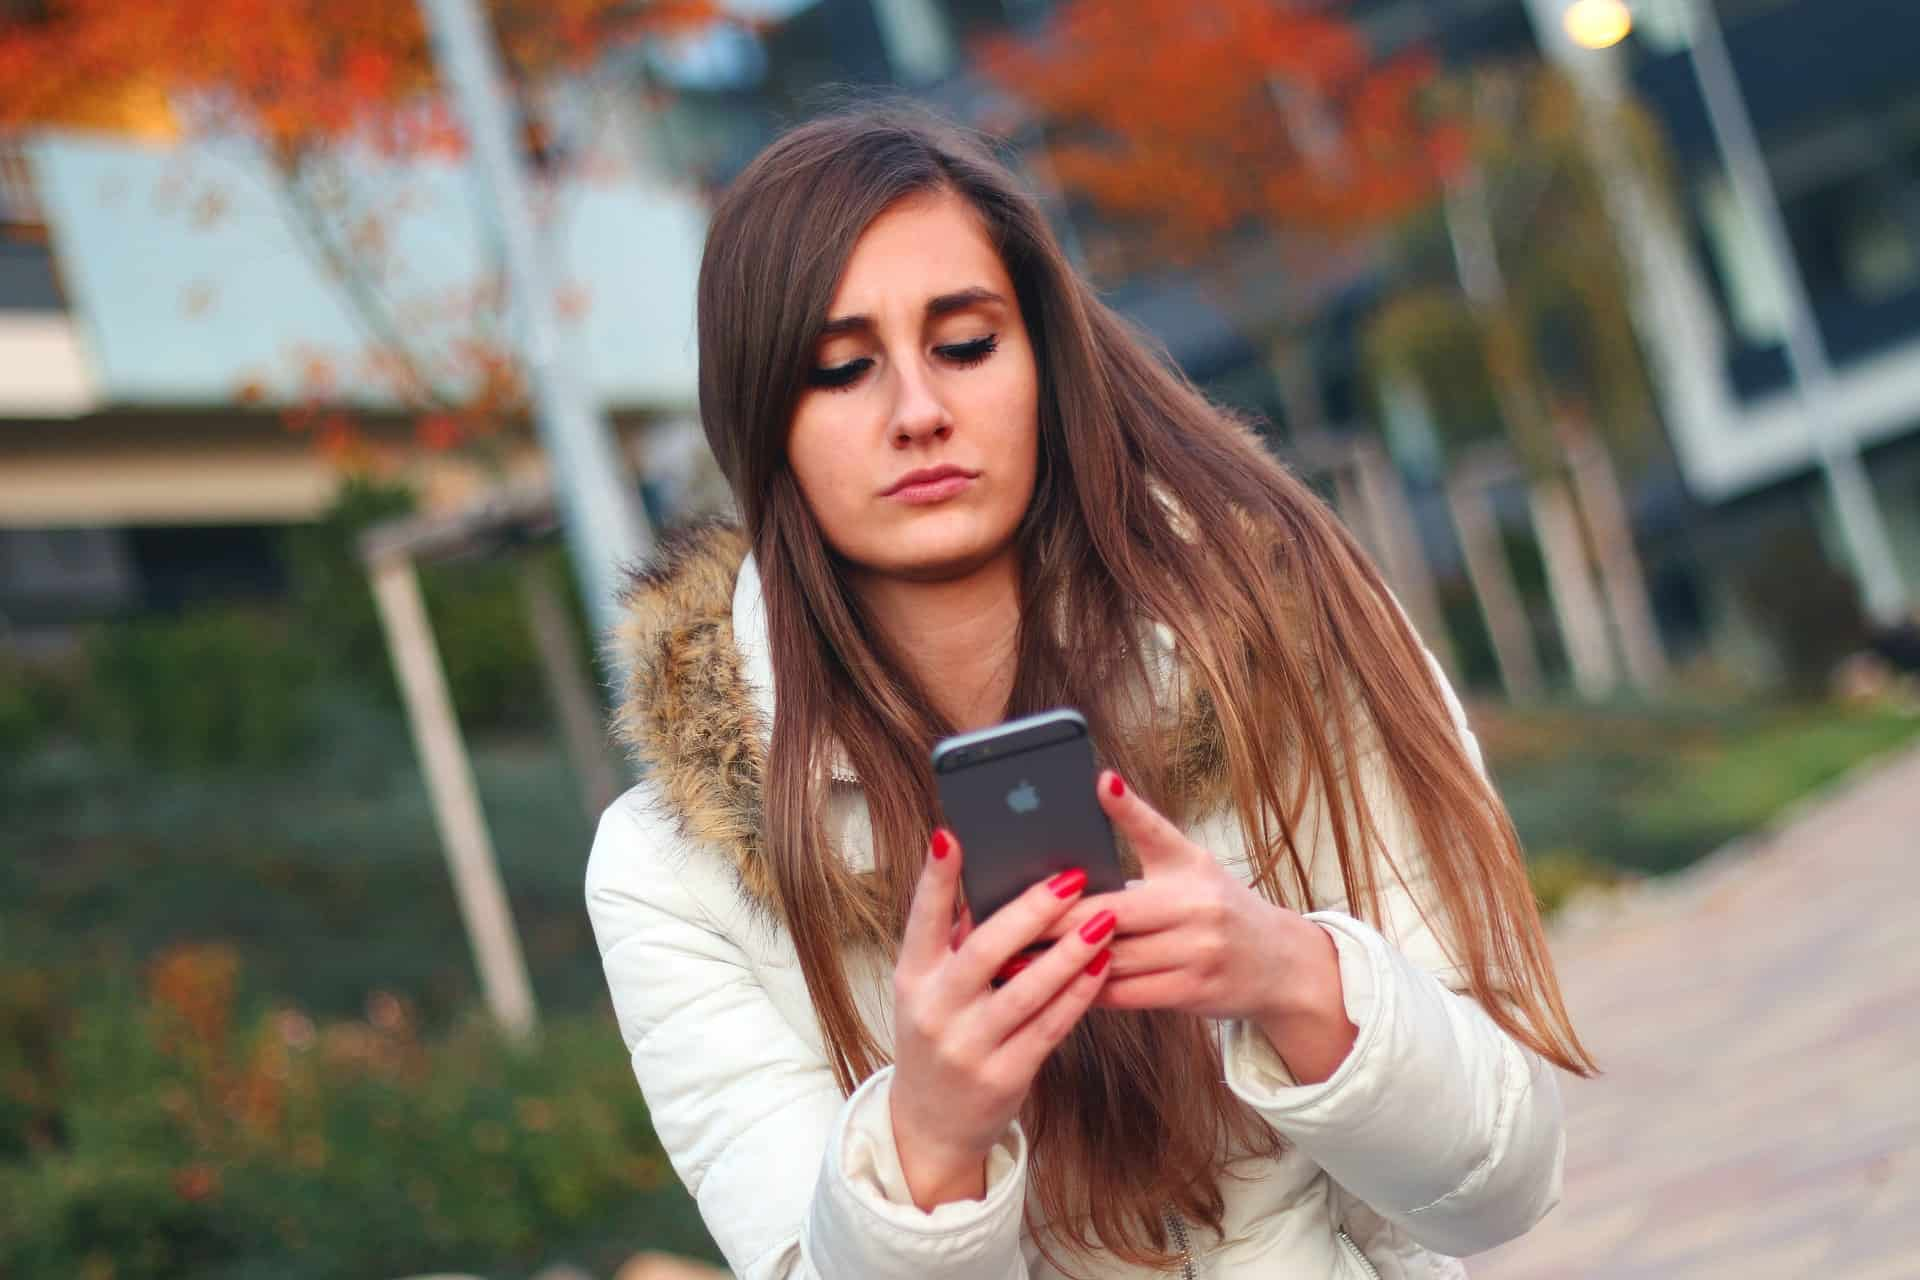 cell phone cyberbullying prevention education